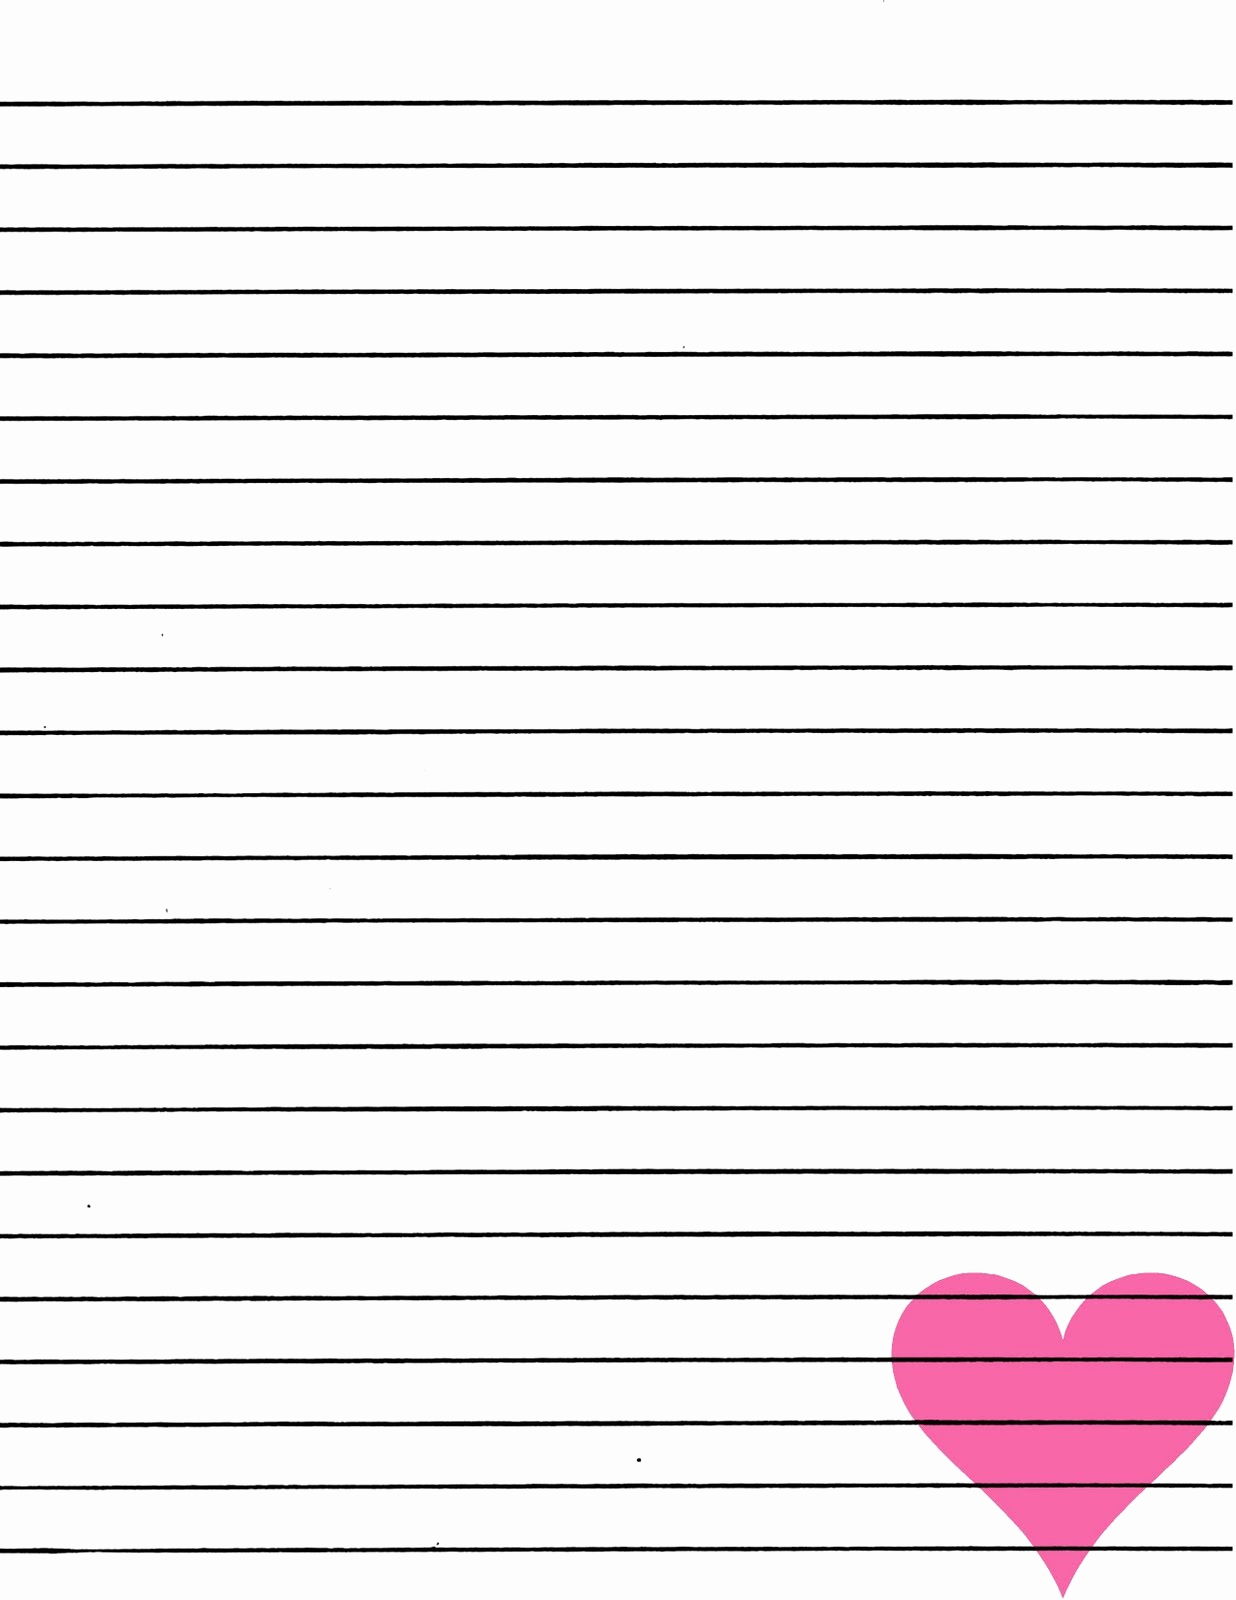 Printable Lined Paper Pdf Unique Lined Paper You Can Print In High Quality